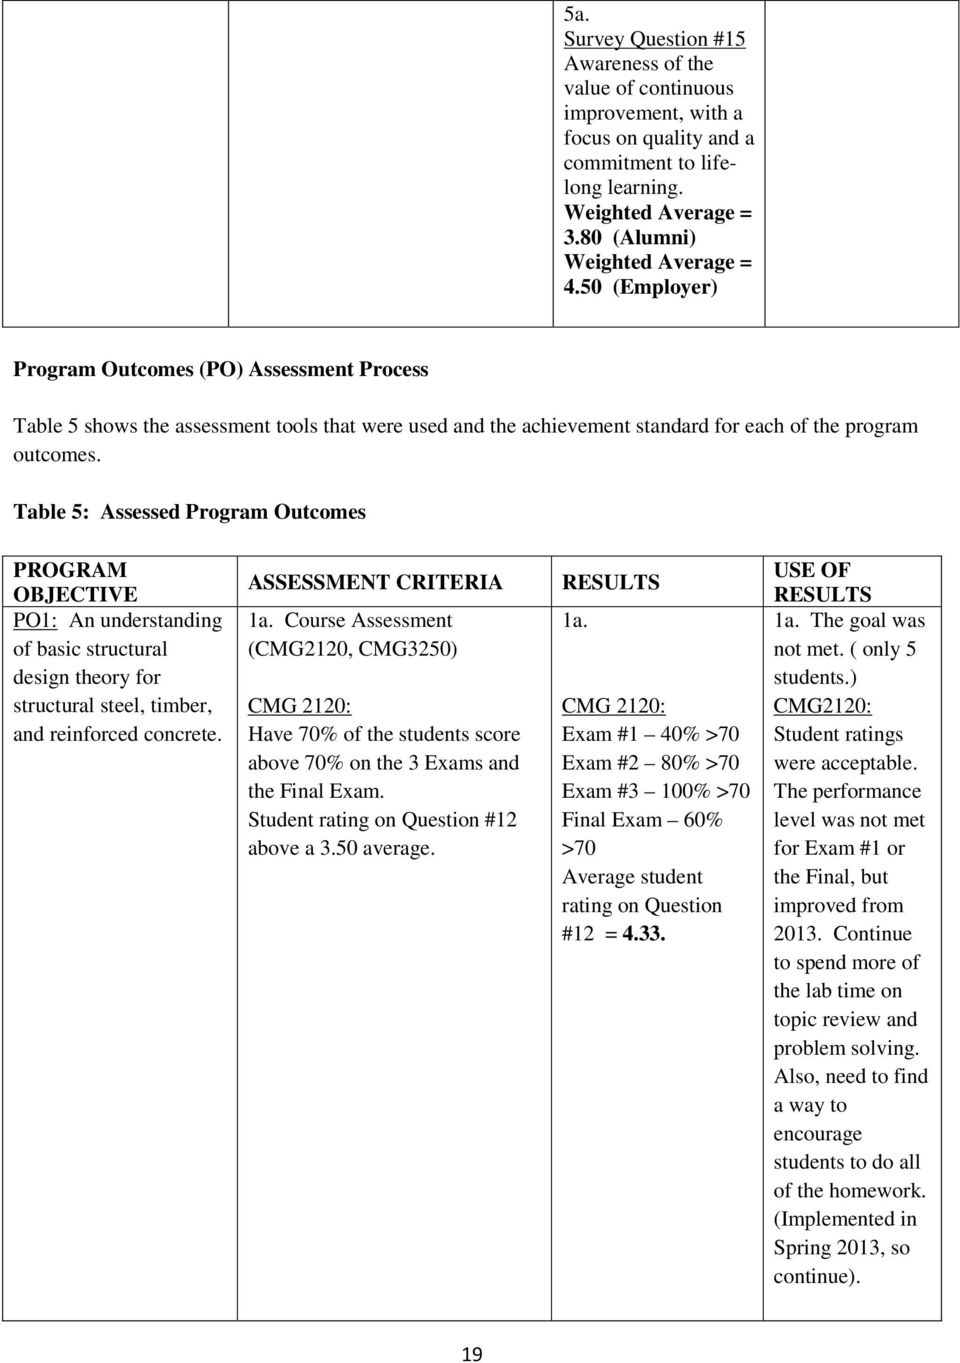 Table 5: Assessed Program Outcomes PROGRAM OBJECTIVE PO1: An understanding of basic structural design theory for structural steel, timber, and reinforced concrete. ASSESSMENT CRITERIA 1a.